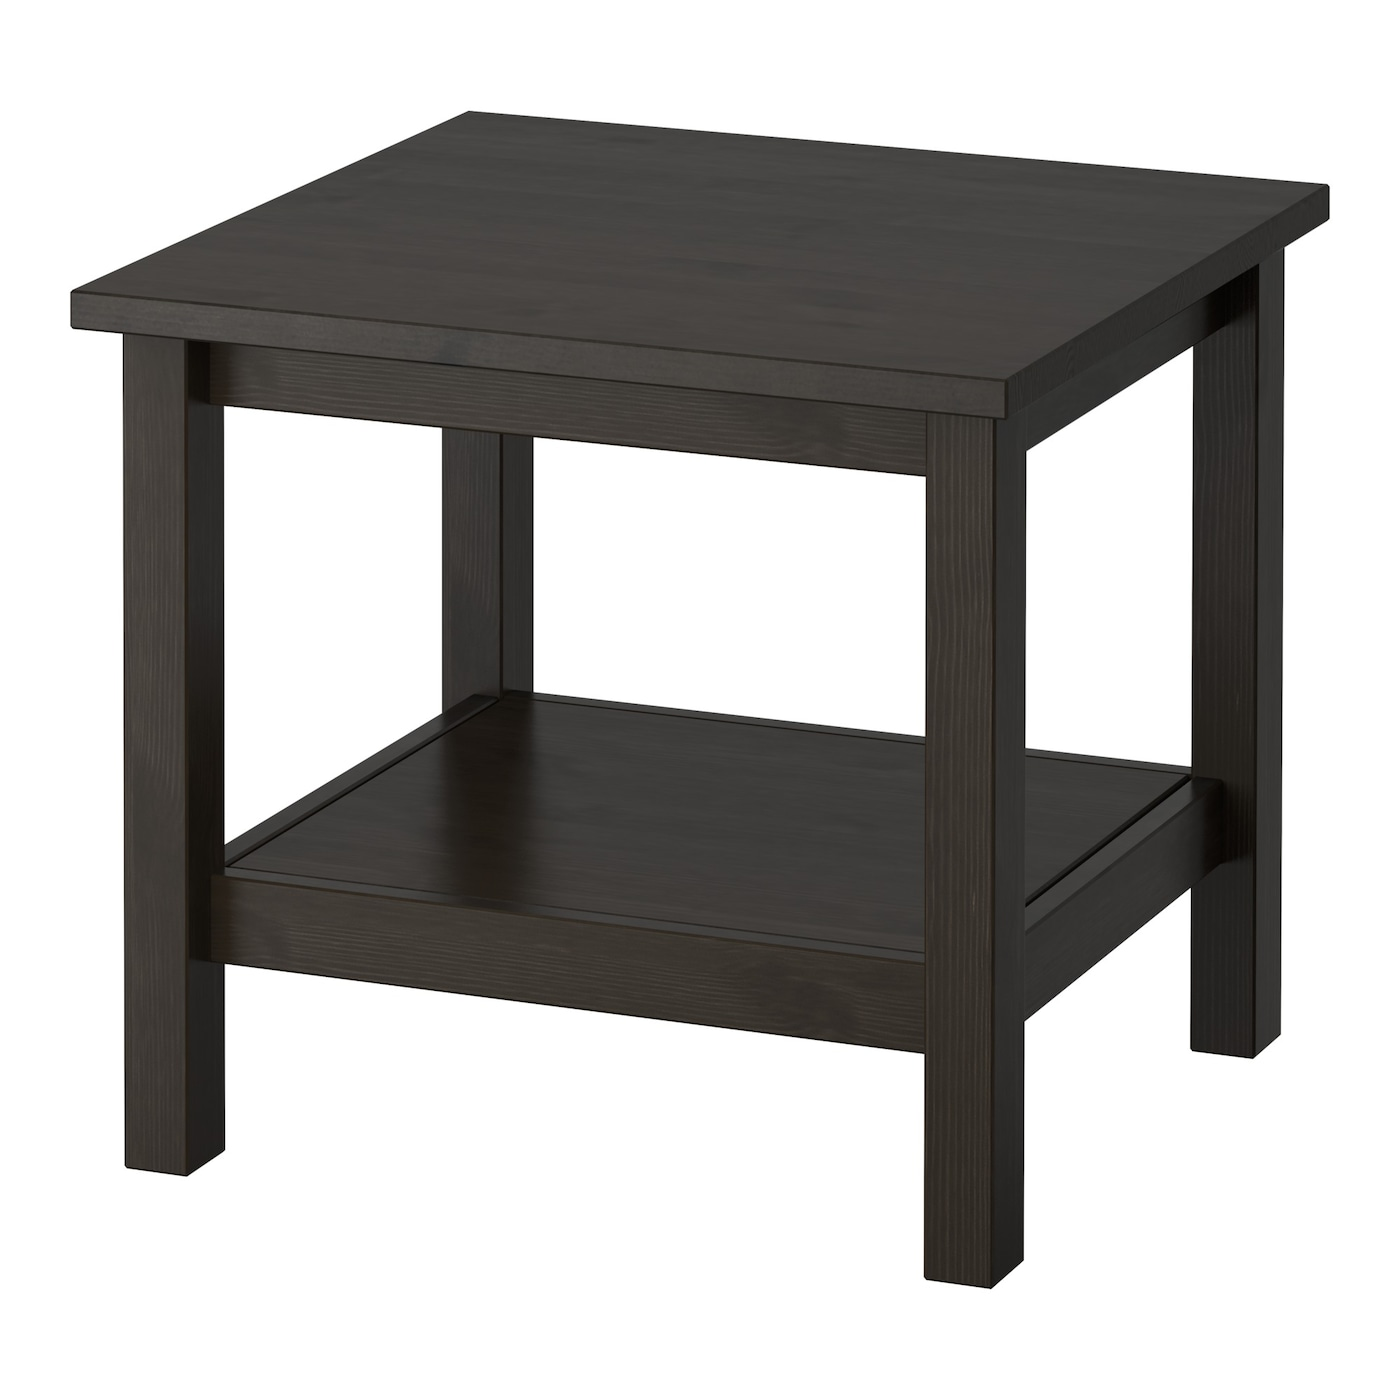 Hemnes side table black brown 55x55 cm ikea for Ikea table bois